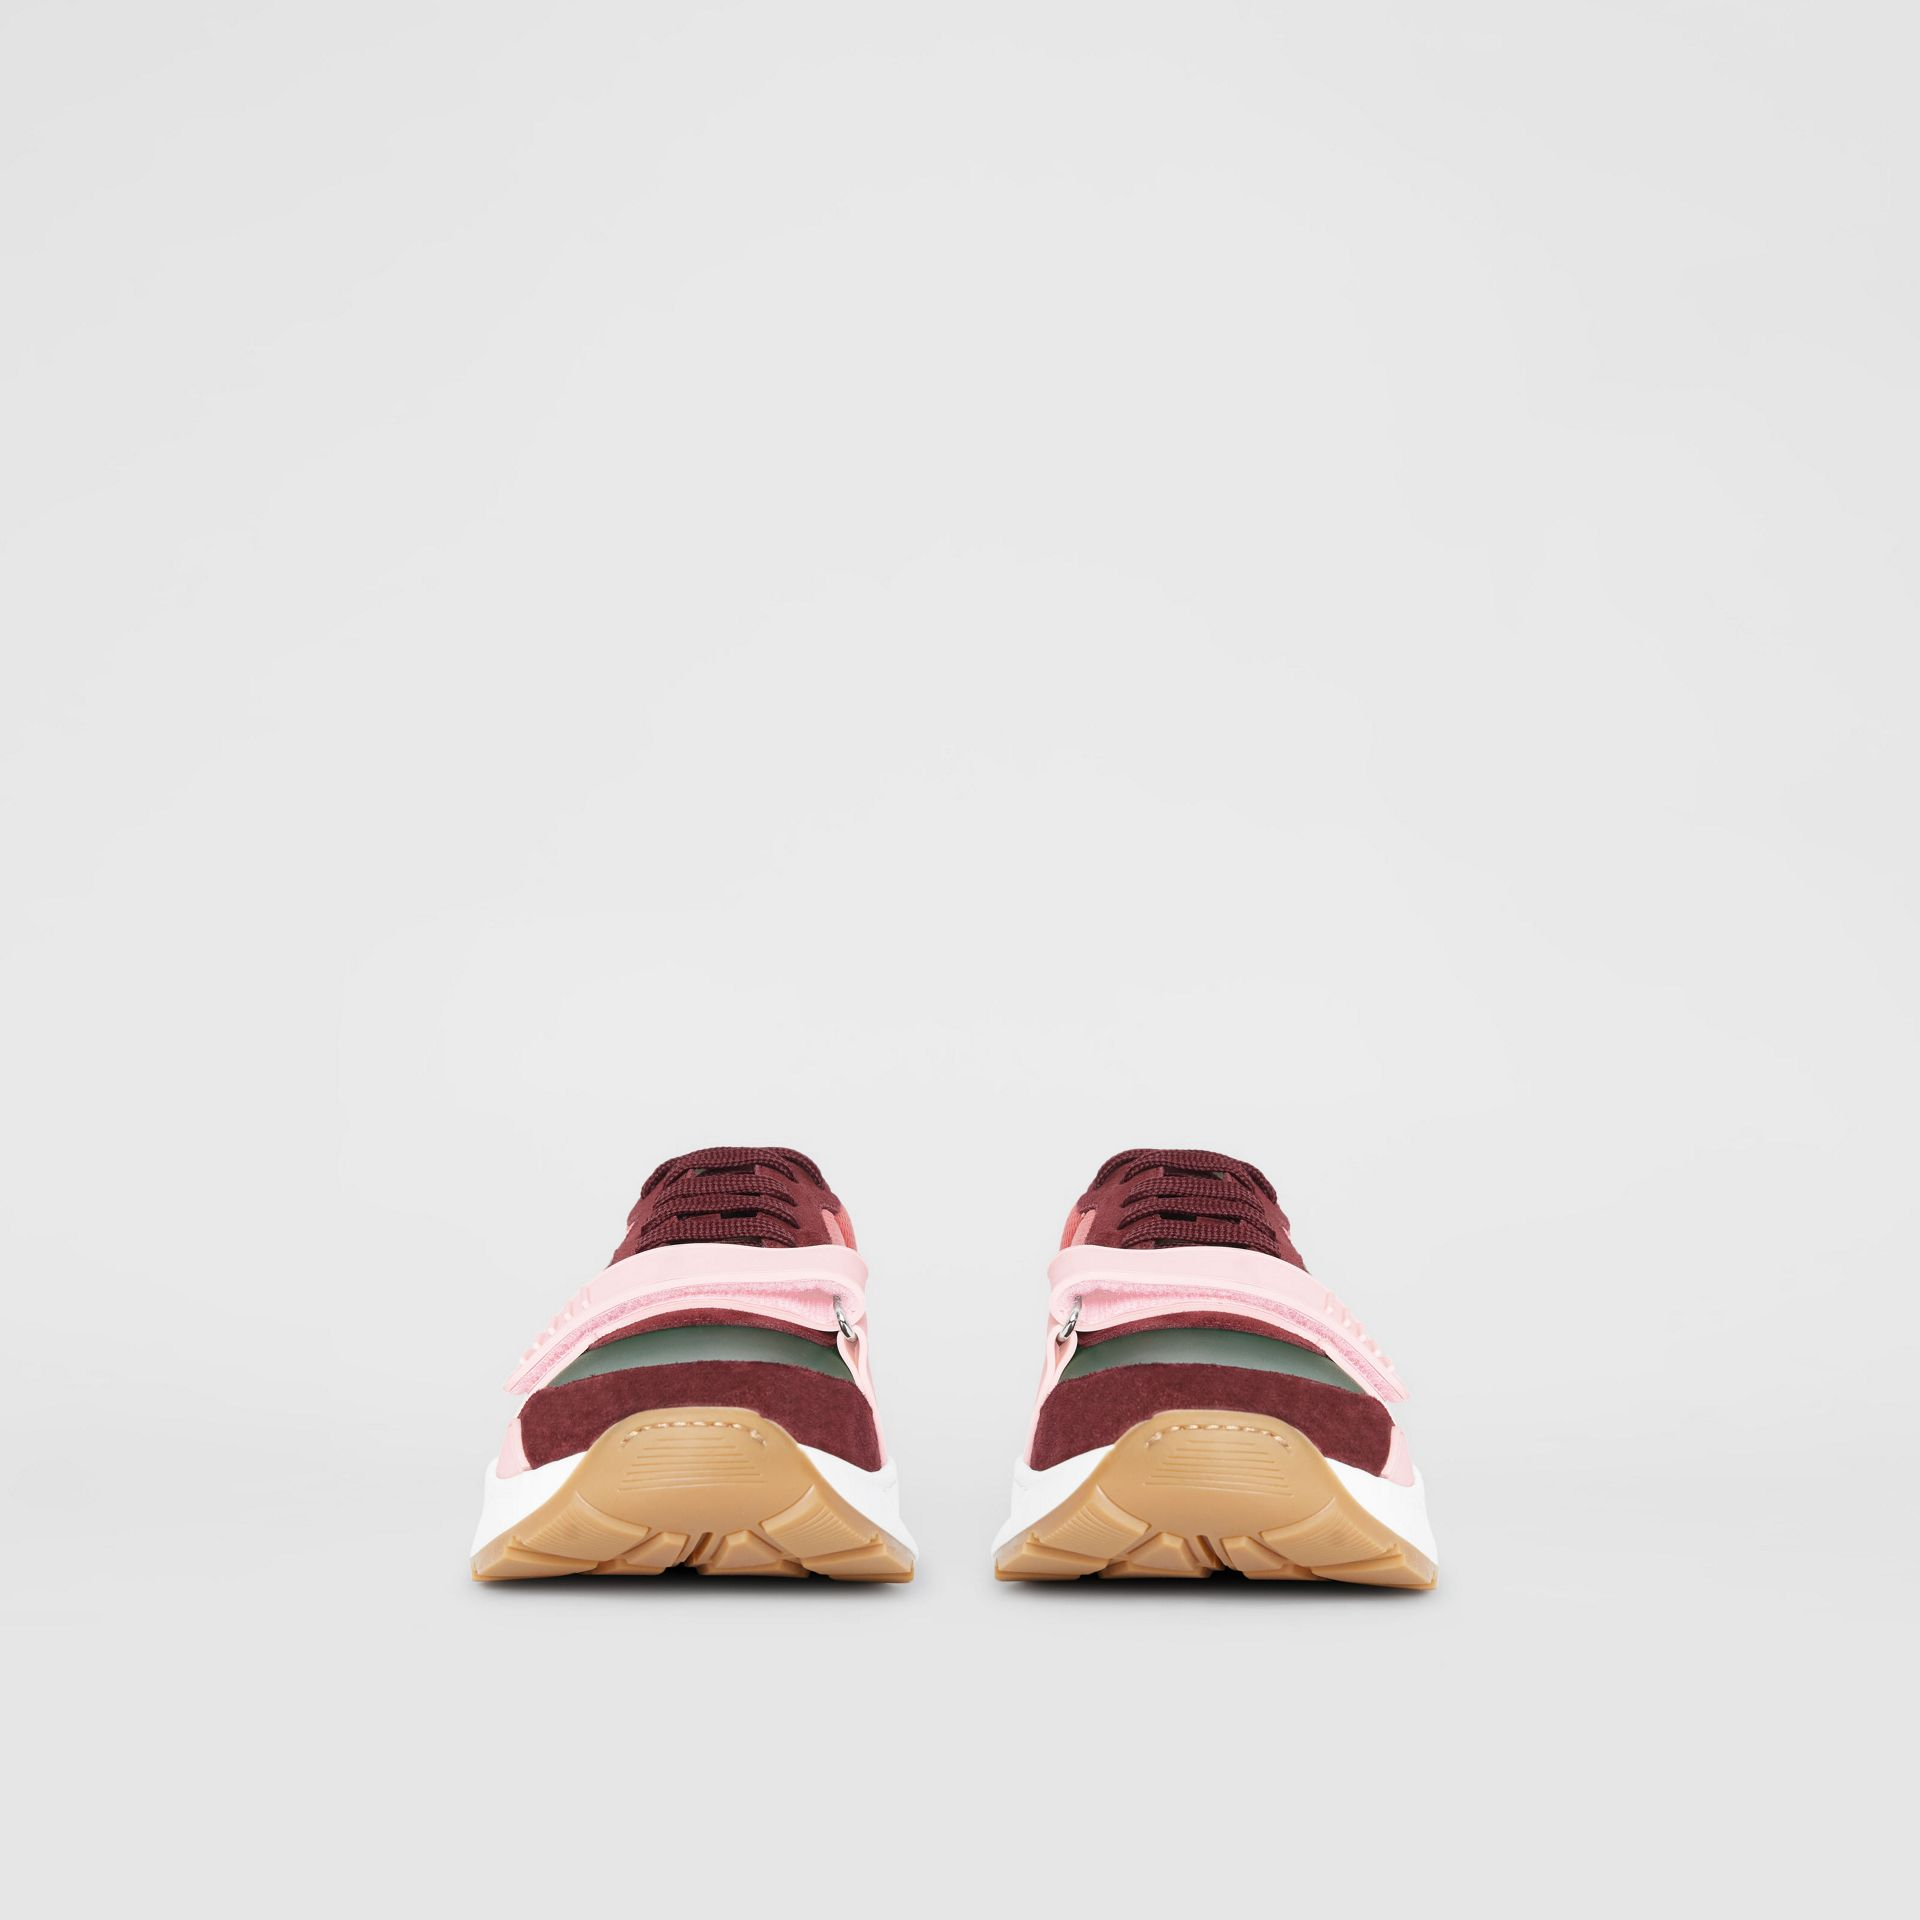 Colour Block Suede and Neoprene Sneakers in Bordeaux/khaki - Men | Burberry United Kingdom - gallery image 3